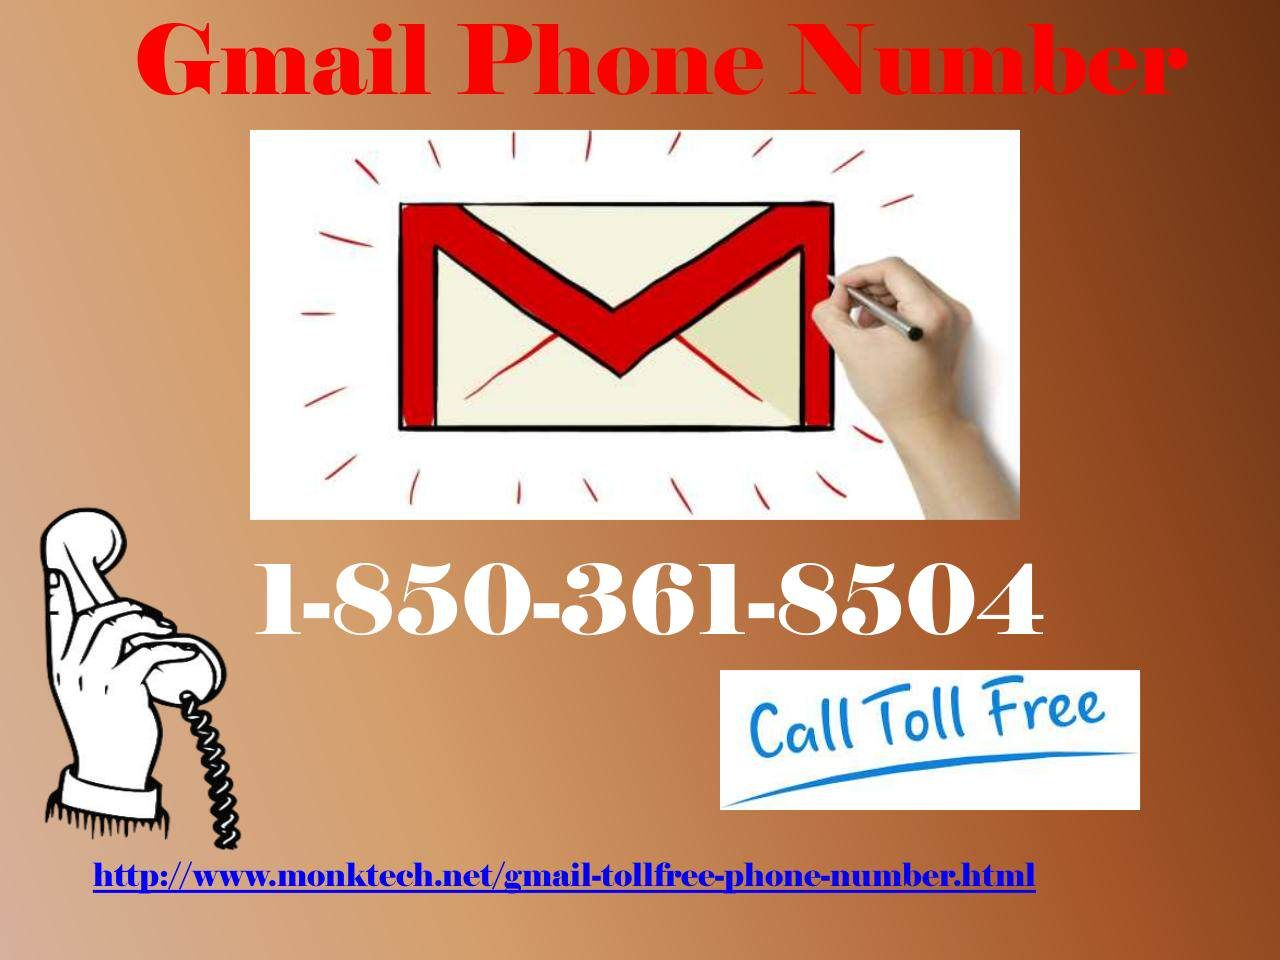 Dial gmail phone number to root out gmail issues 1850361